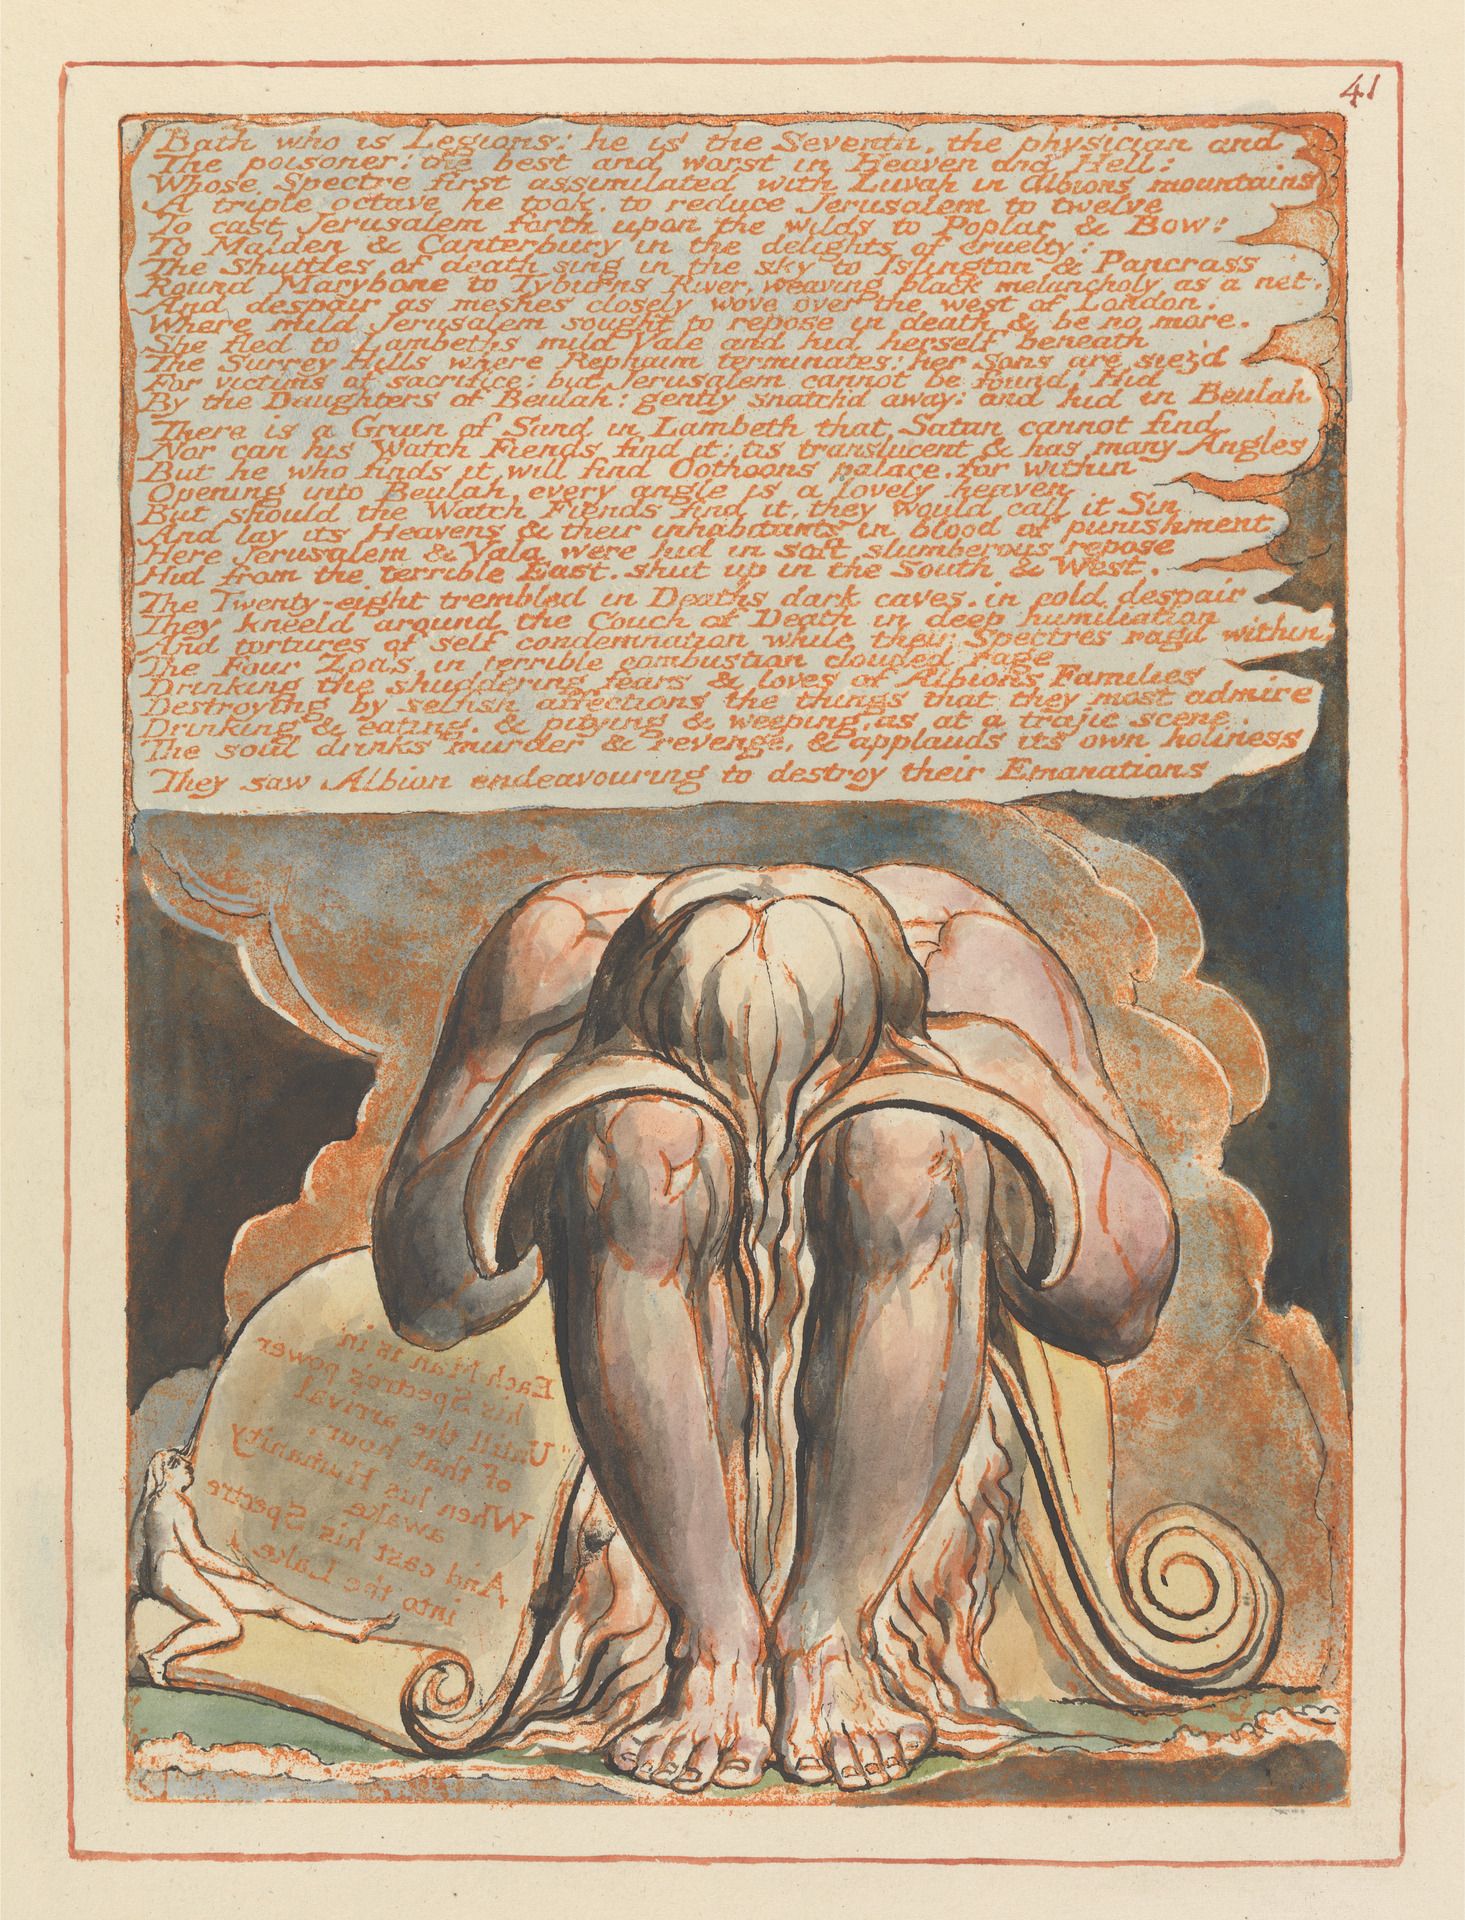 Plate 41. Relief etching print from Jerusalem, William Blake. (Published with permission from the Yale Center for British Art, Paul Mellon Collection)